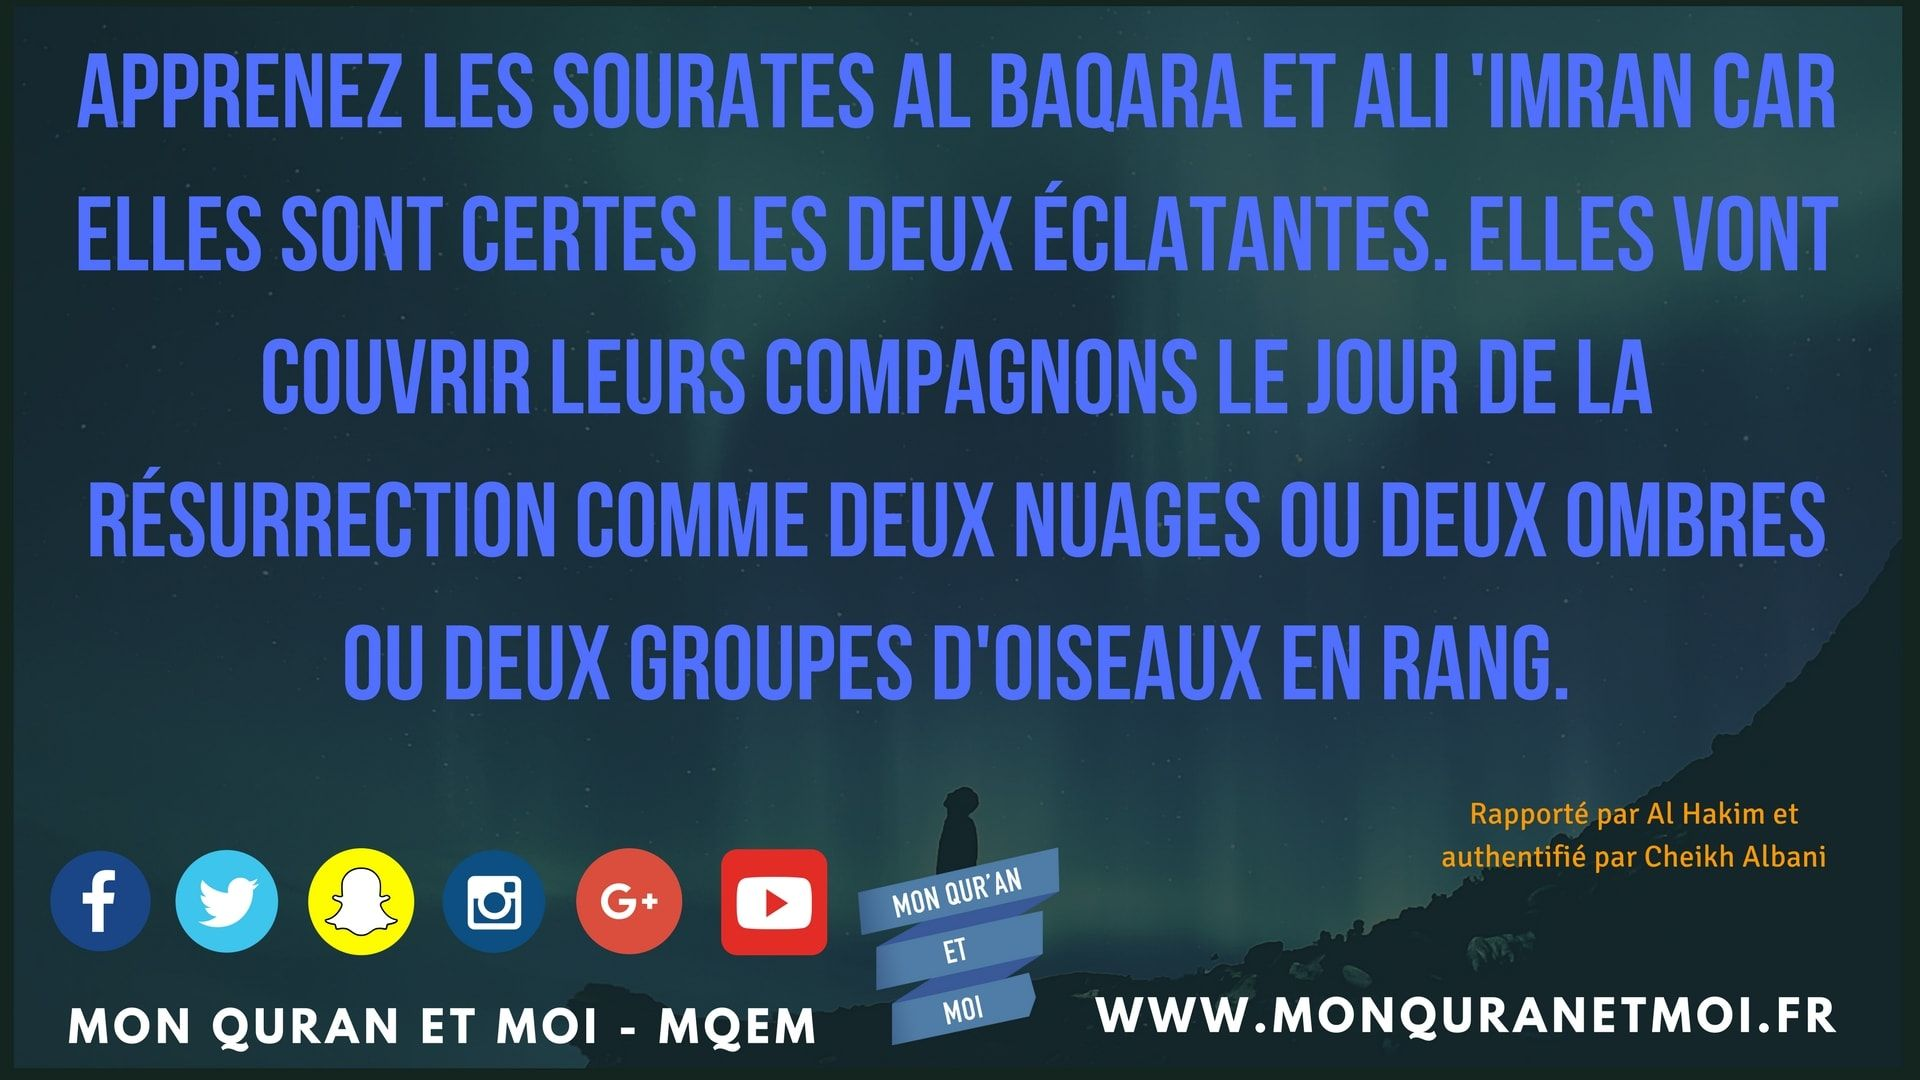 Sourate-al-baqara-2-e1509459464283.jpg